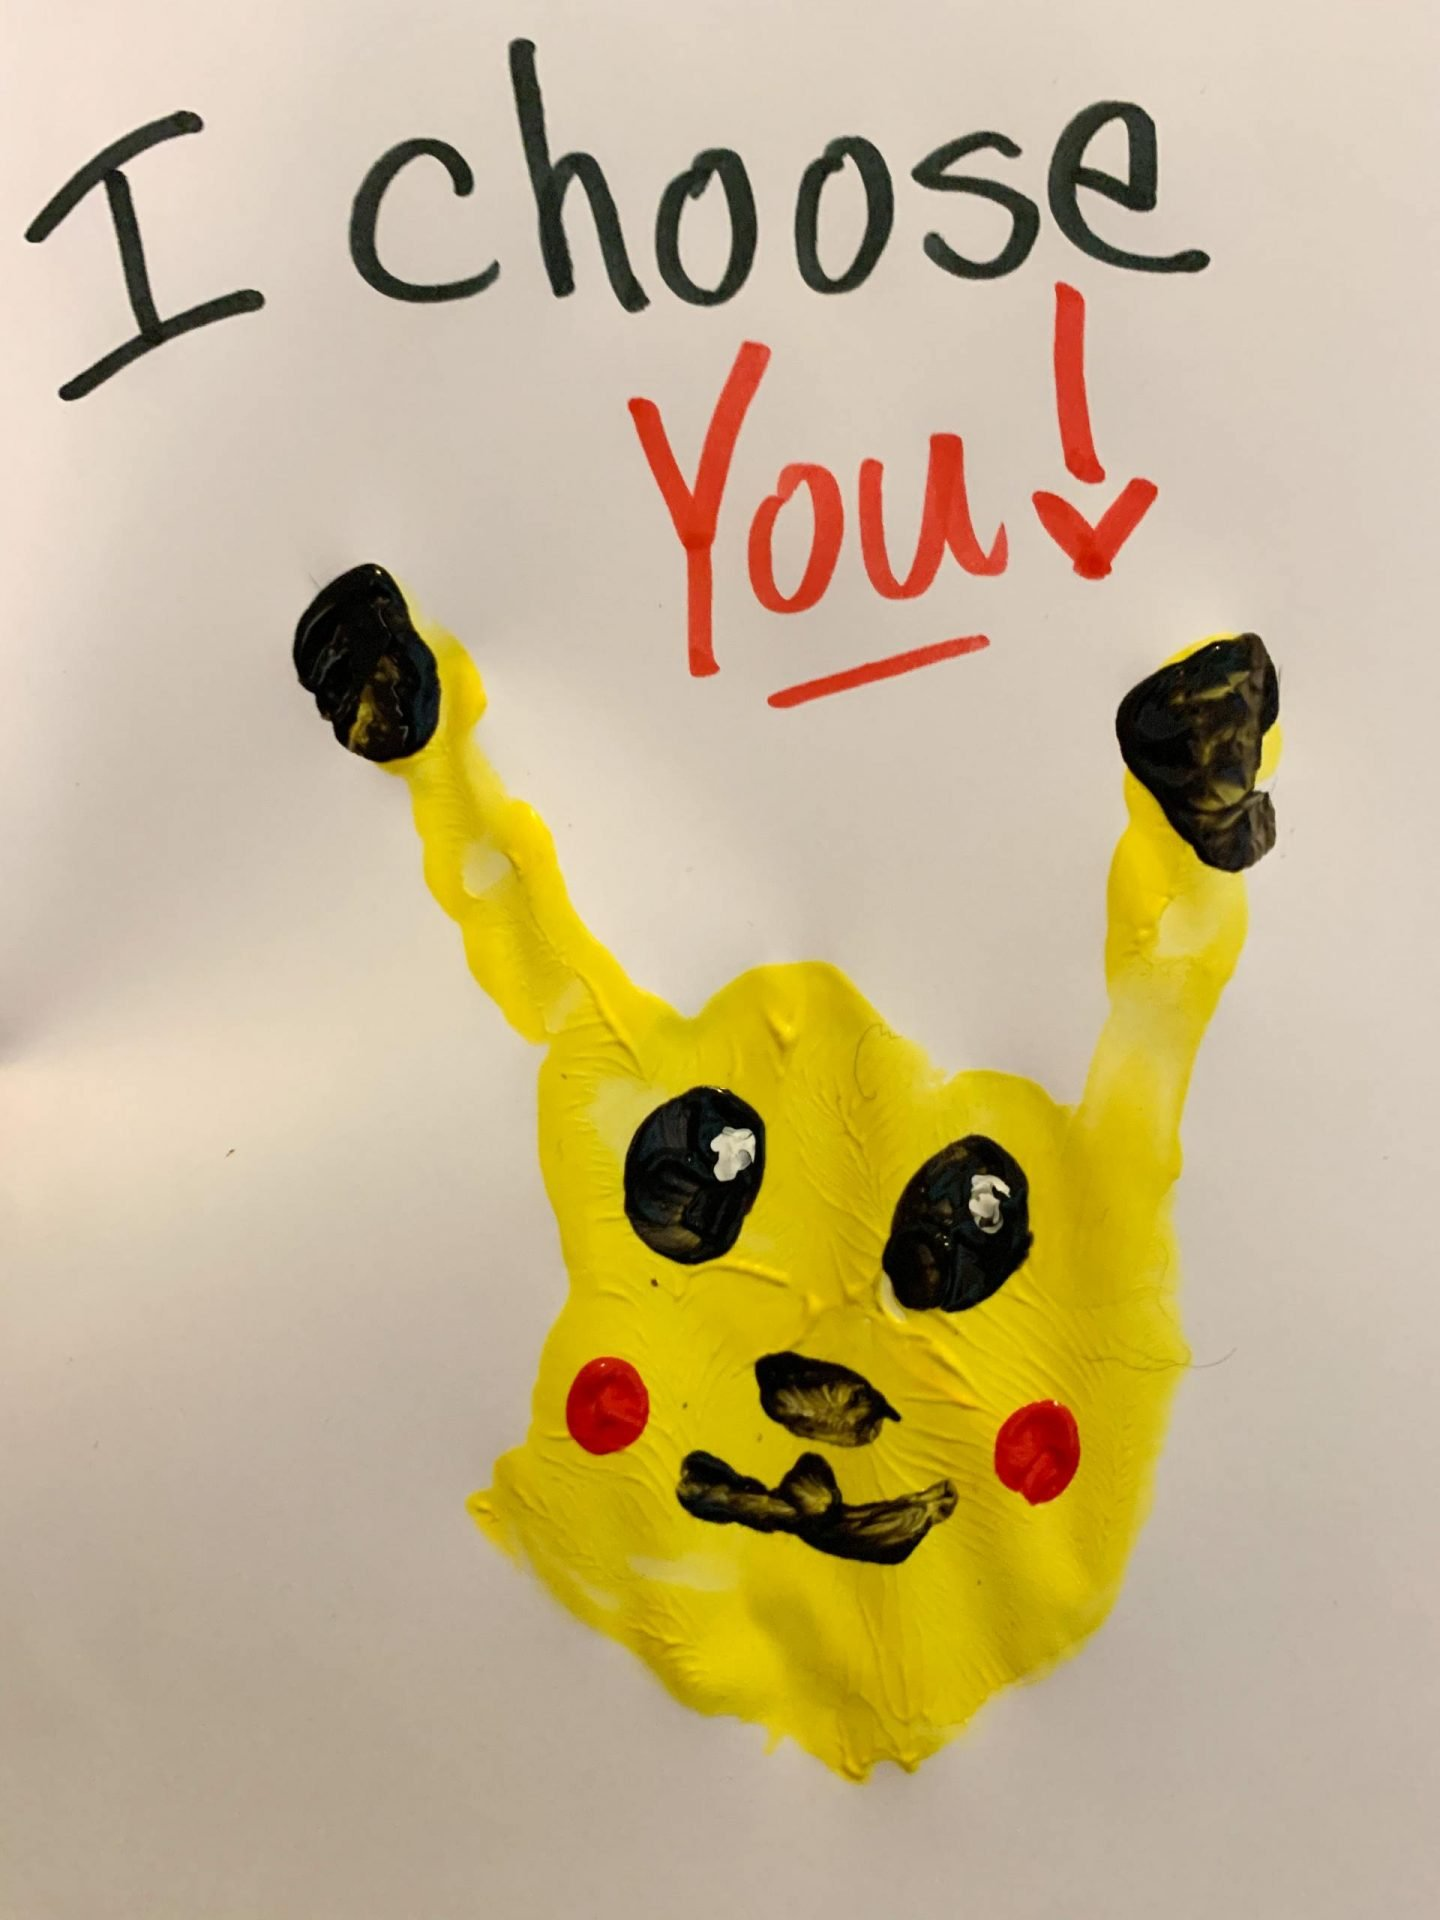 A Pokemon Valentine's Day handprint craft that is sure to be a crowd pleaser for both boys and girls. This cute little Pikachu is an easy and kid friendly activity for children.